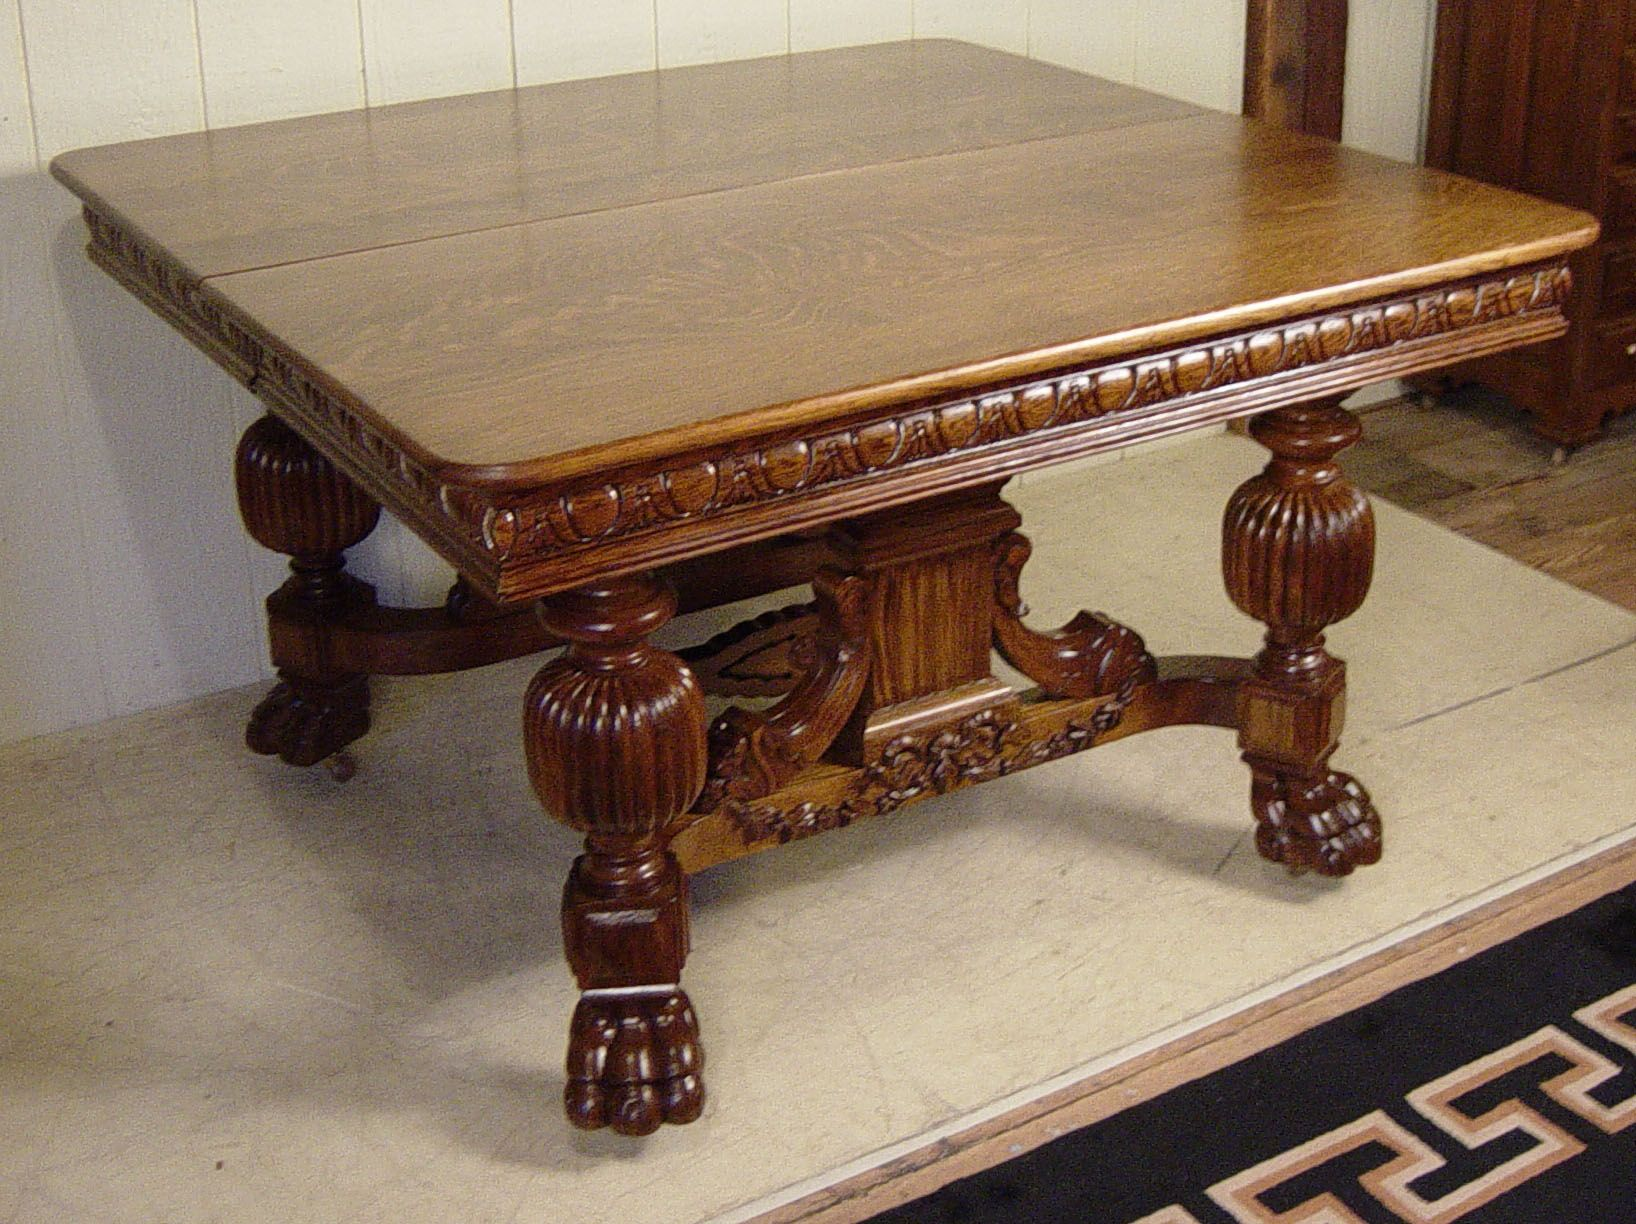 48 Square Oak Dining Table With 4 Leaves Oak Dining Table Antique Oak Furniture Dining Table 48 square dining table